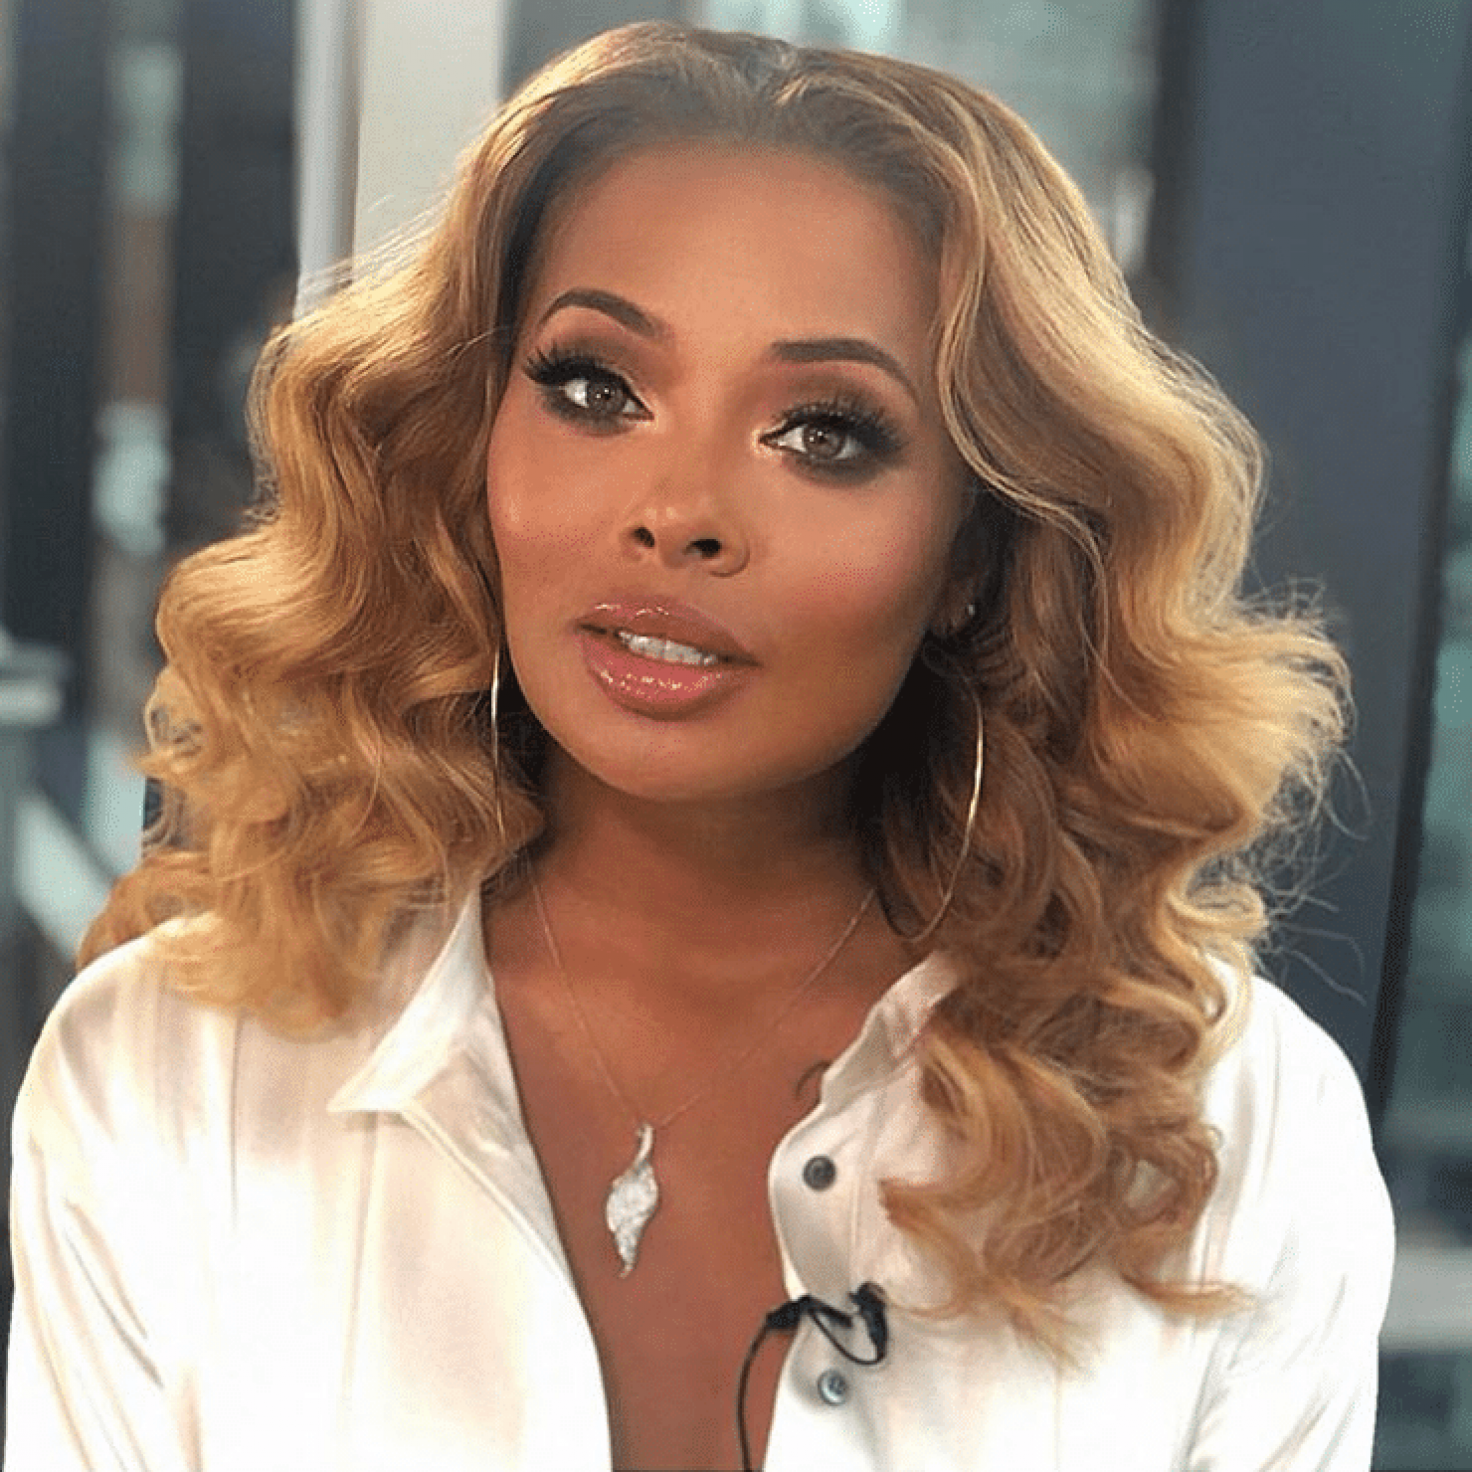 Whoa, Mama! Eva Marcille Is Pregnant With Baby Number 3